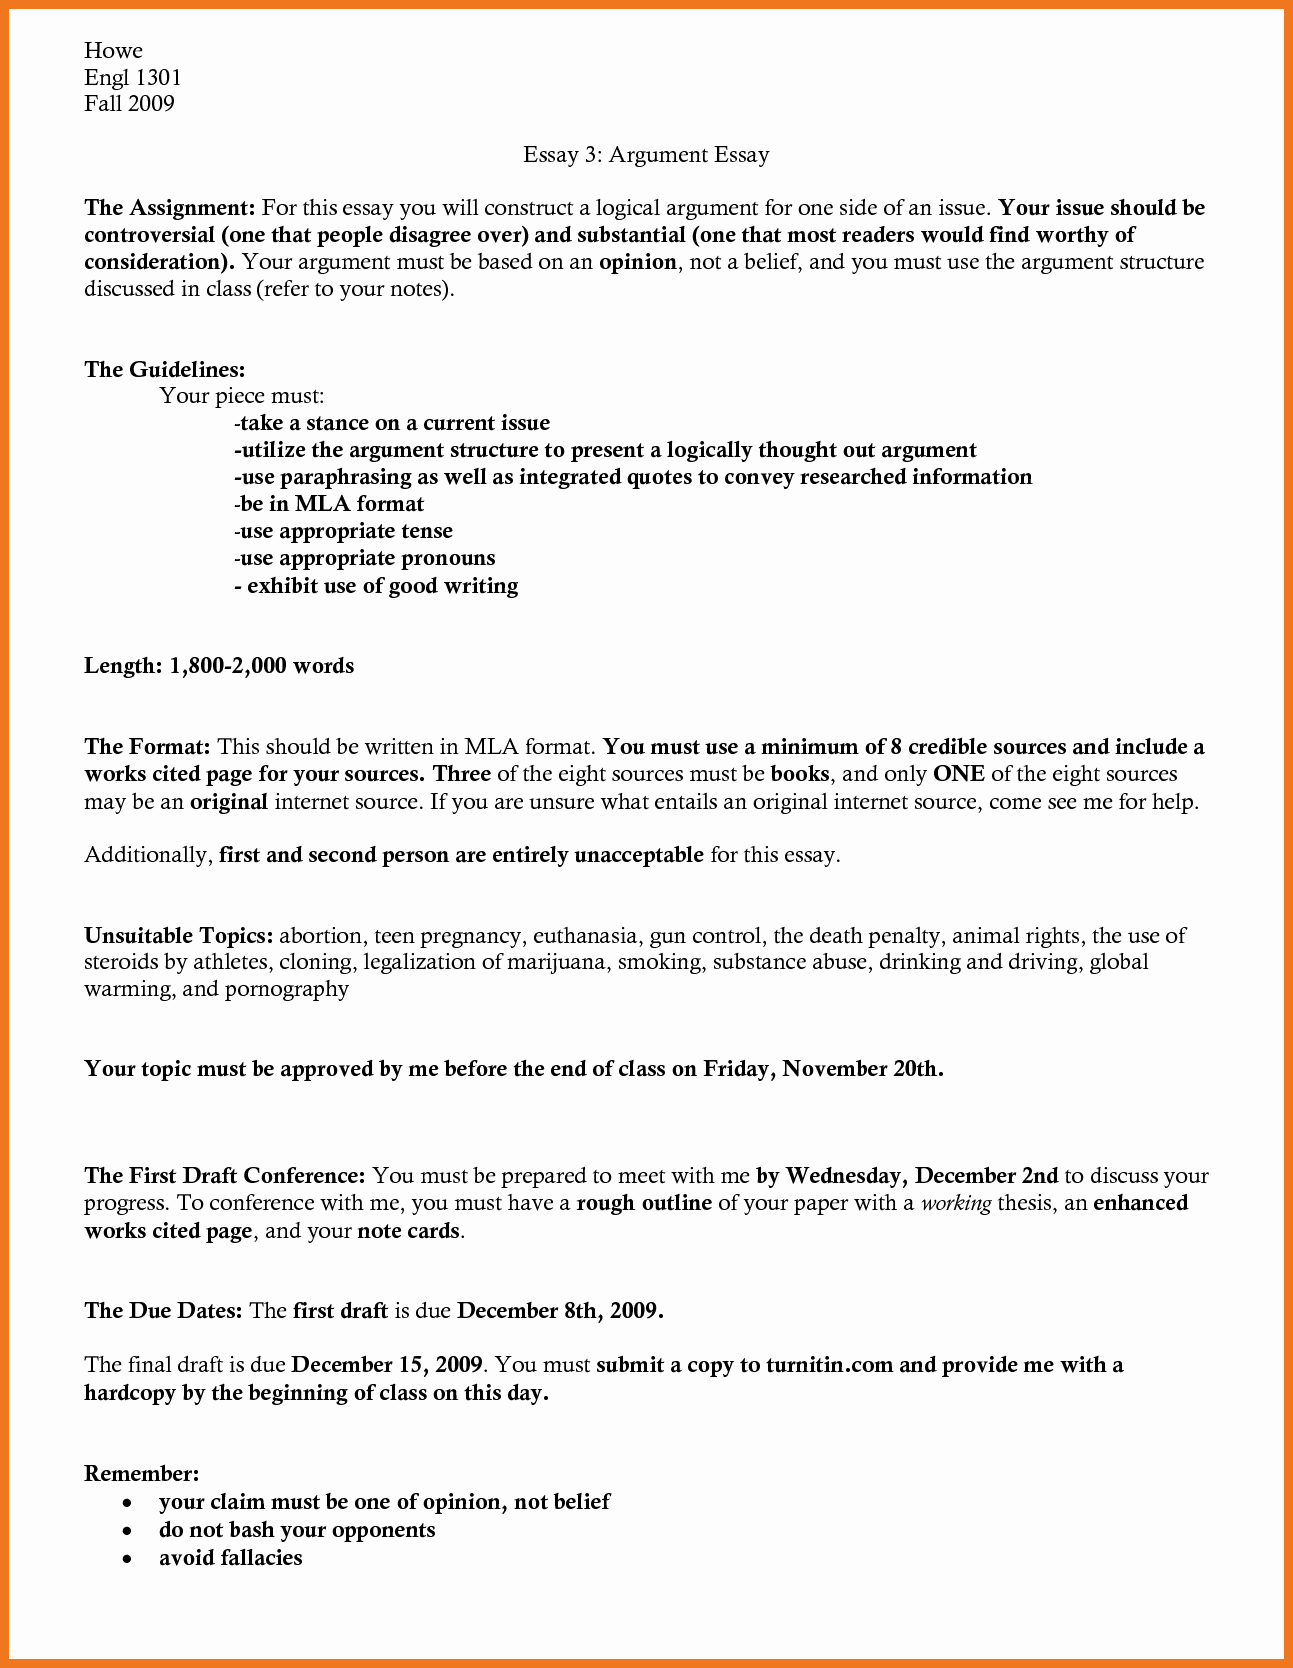 Mla format Outline Template Fresh 0 1 Mla formatted Outline Example